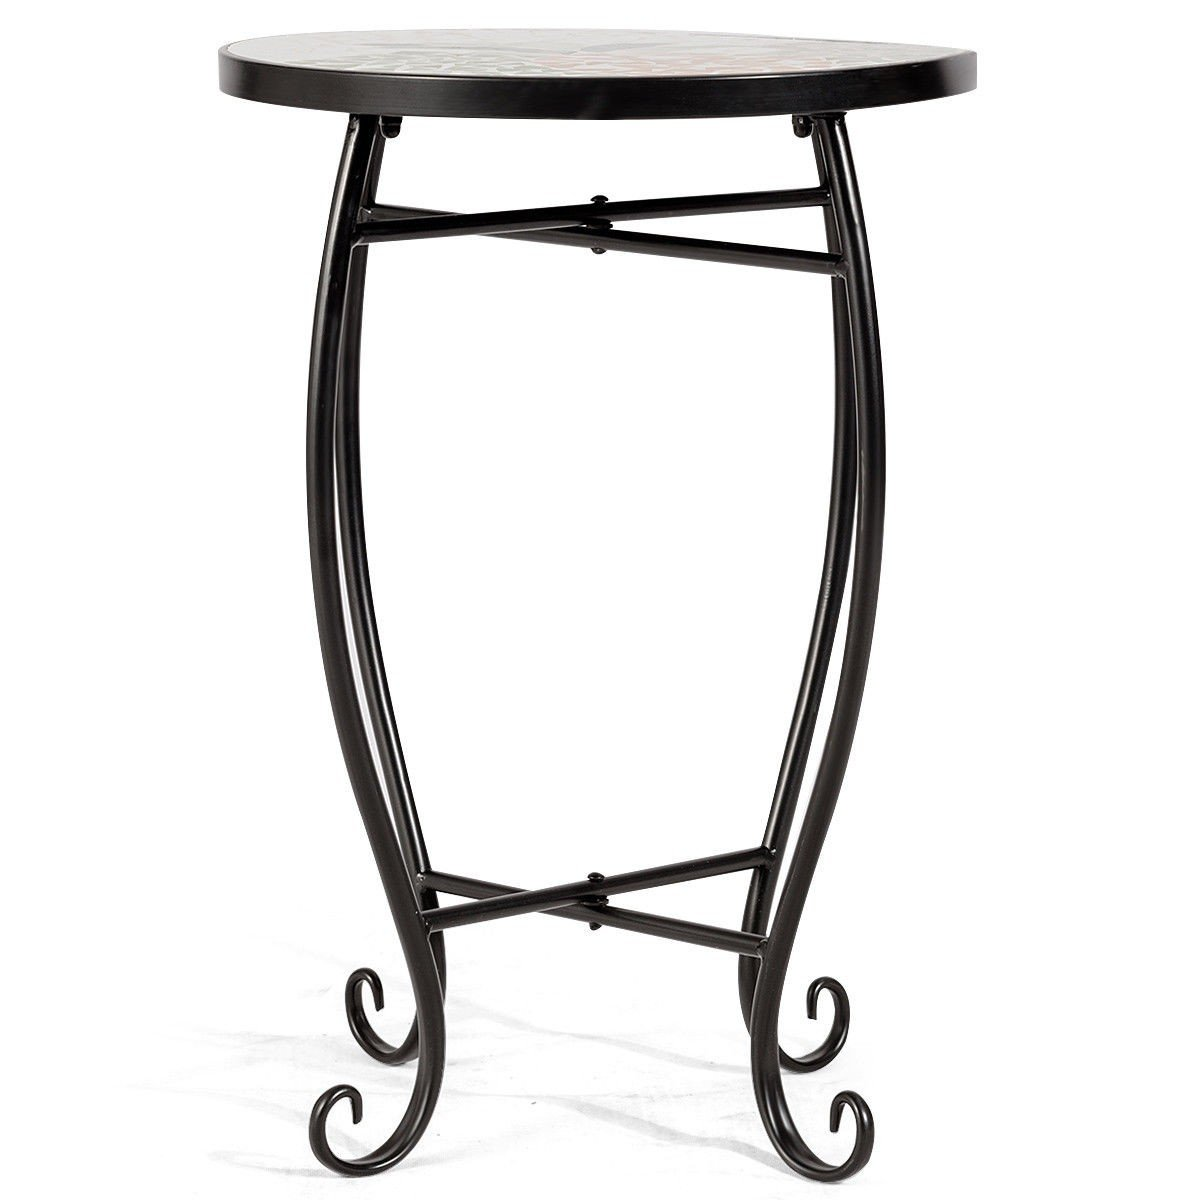 custpromo mosaic accent table metal round side plant stand outdoor with cobalt glass top indoor nautical themed floor lamps target kitchen pottery barn coffee headboards counter